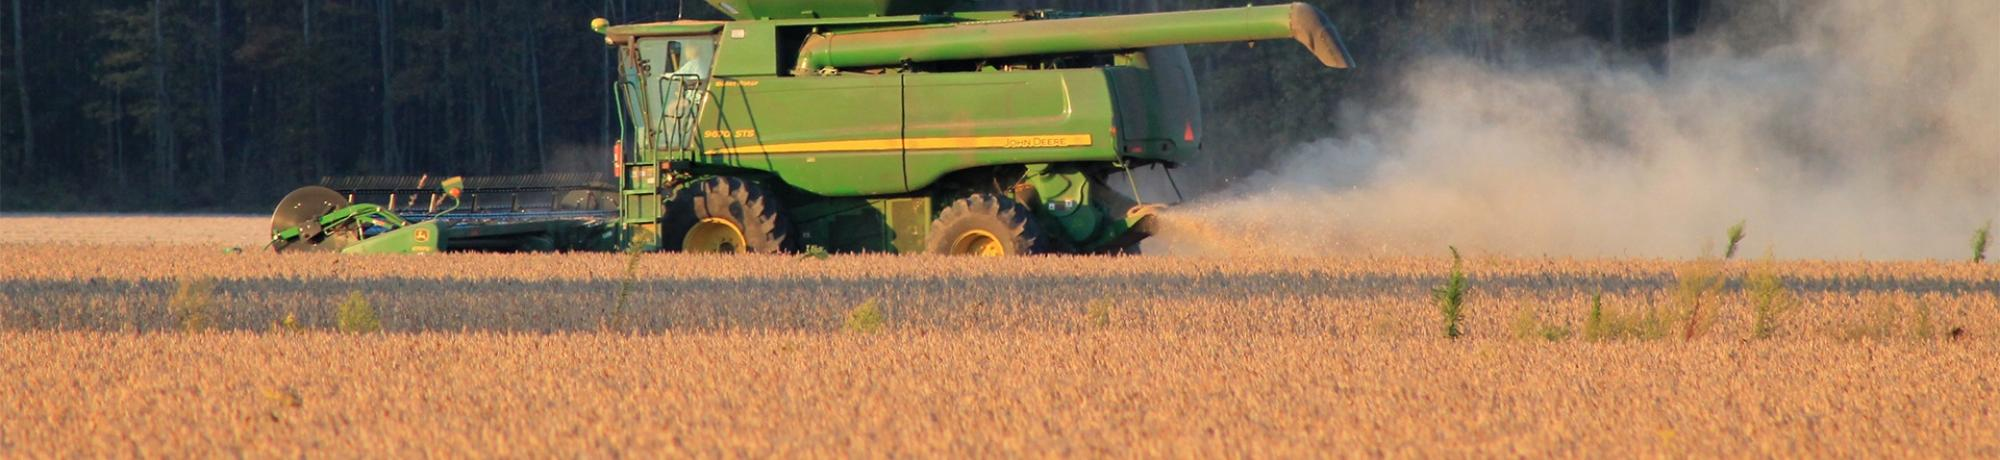 Harvesting soybeans in field with large agriculture machine